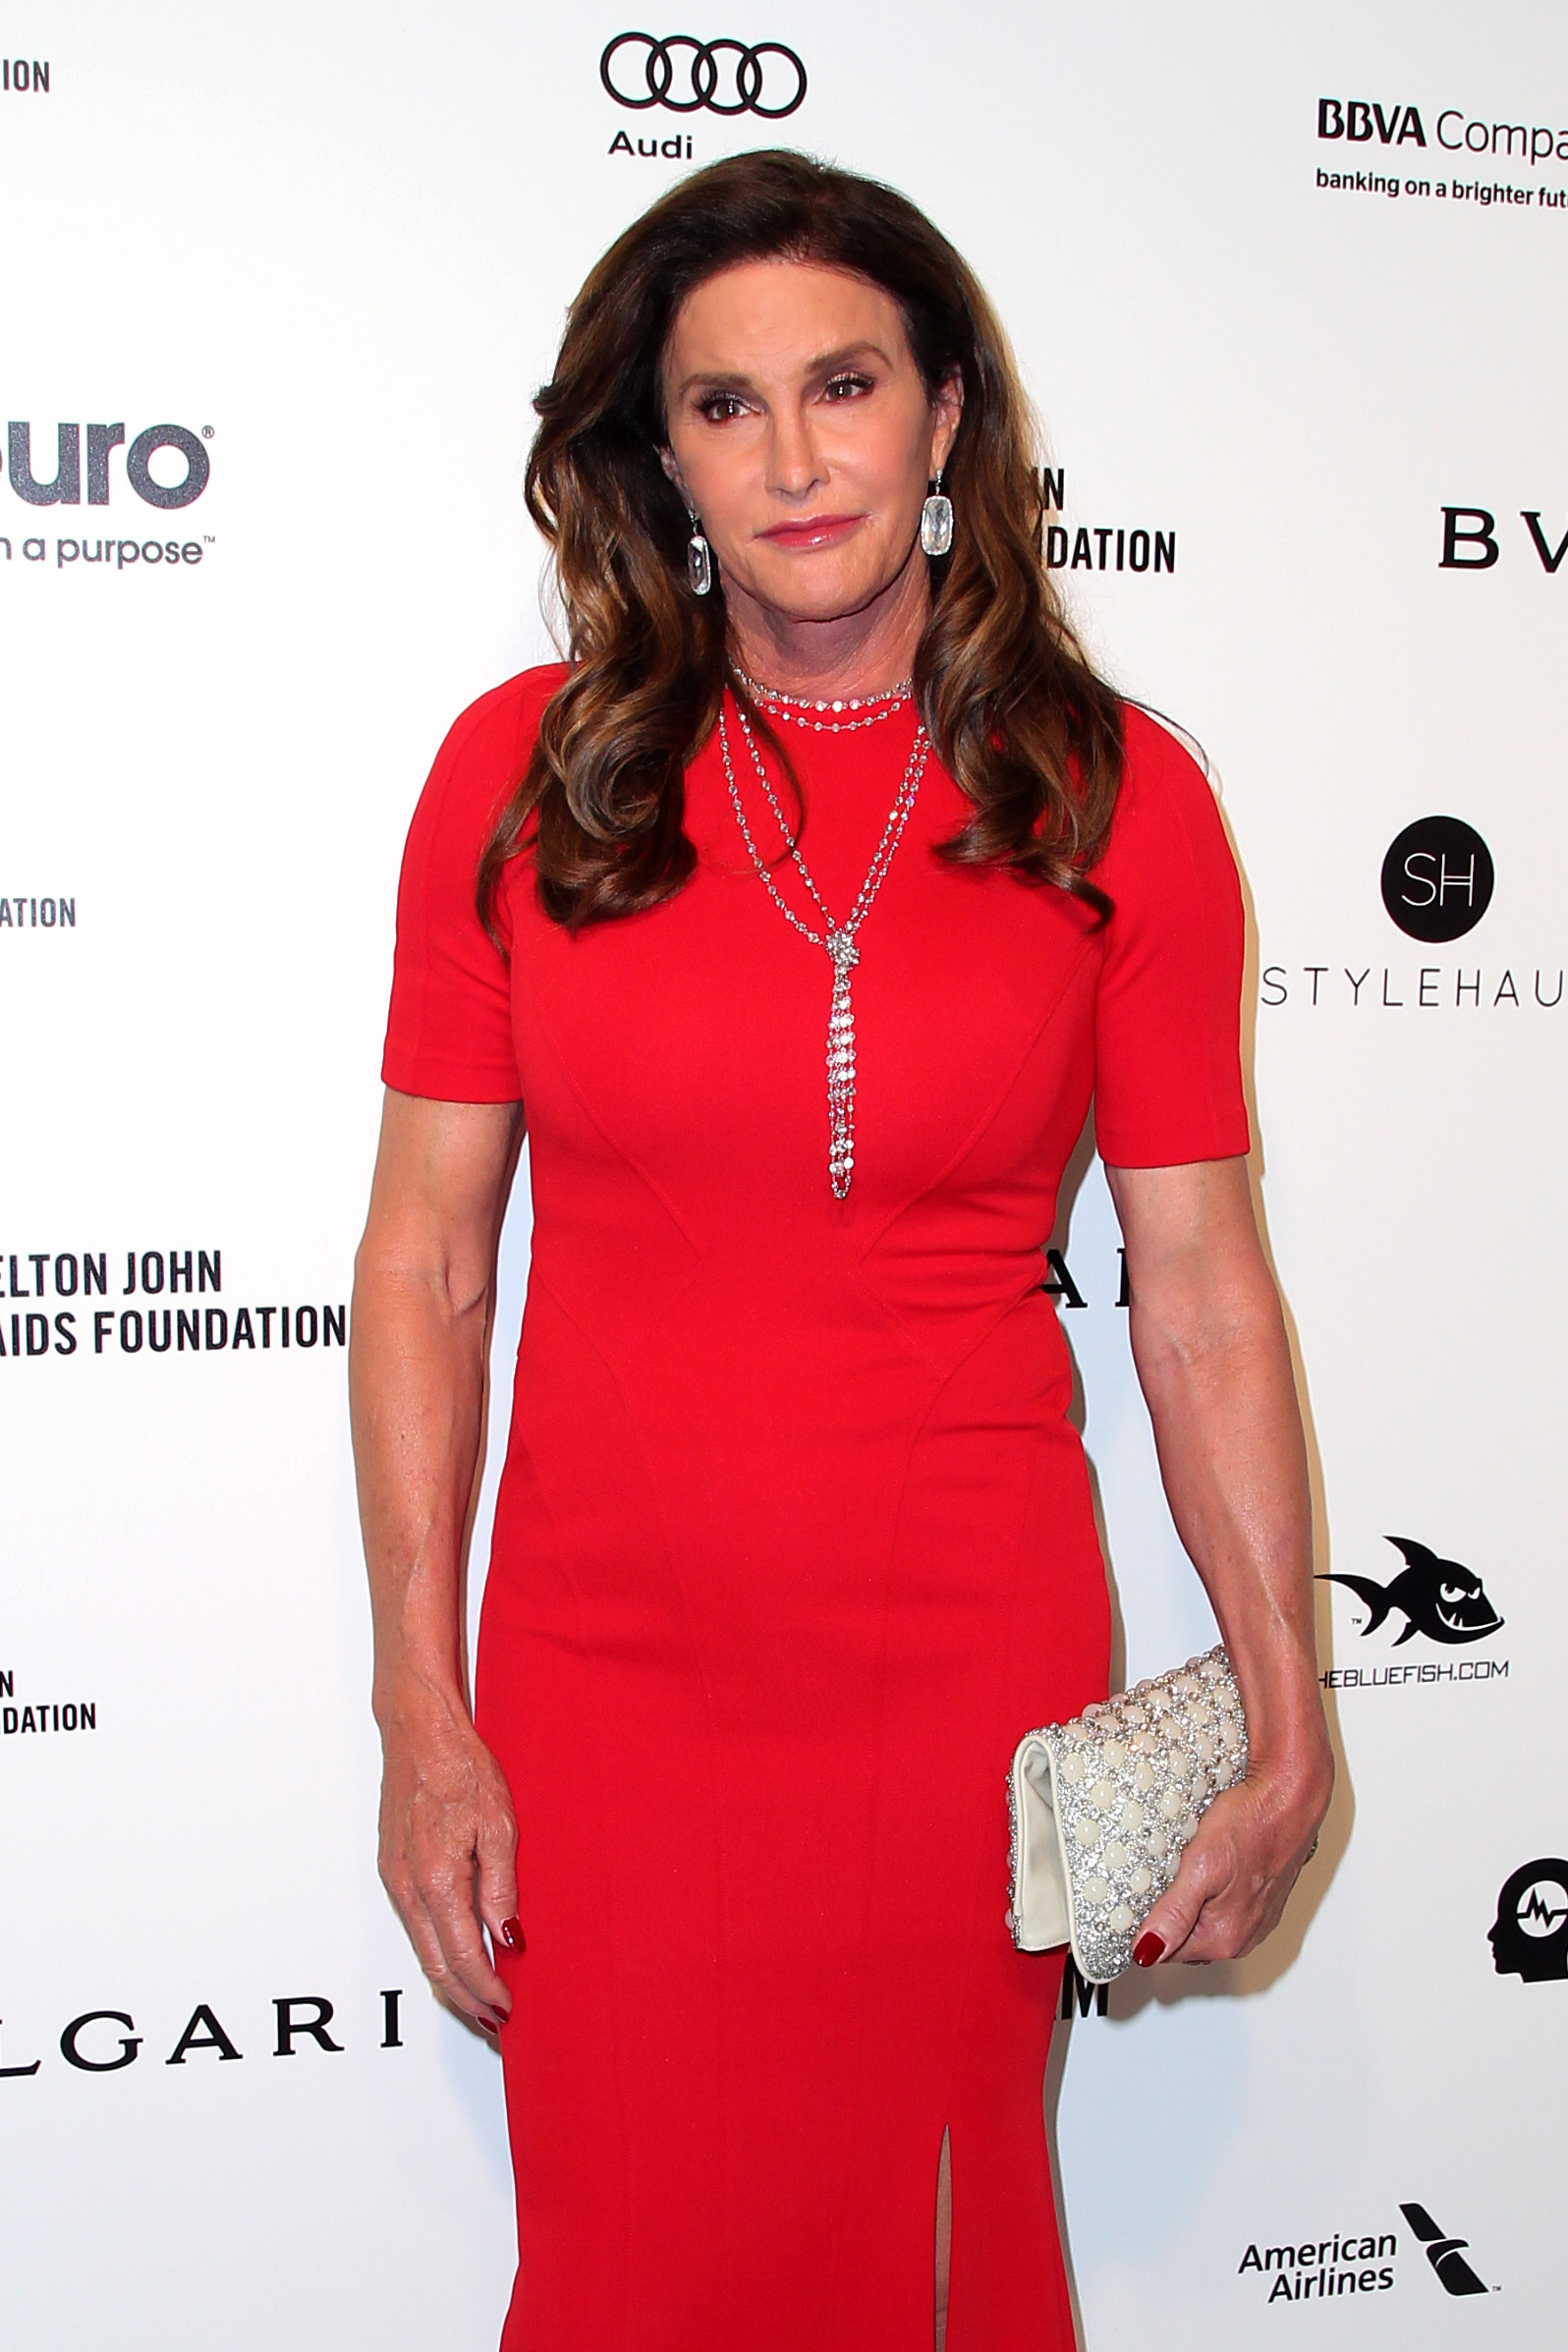 Caitlyn Jenner discusses LGBT rights in Cleveland